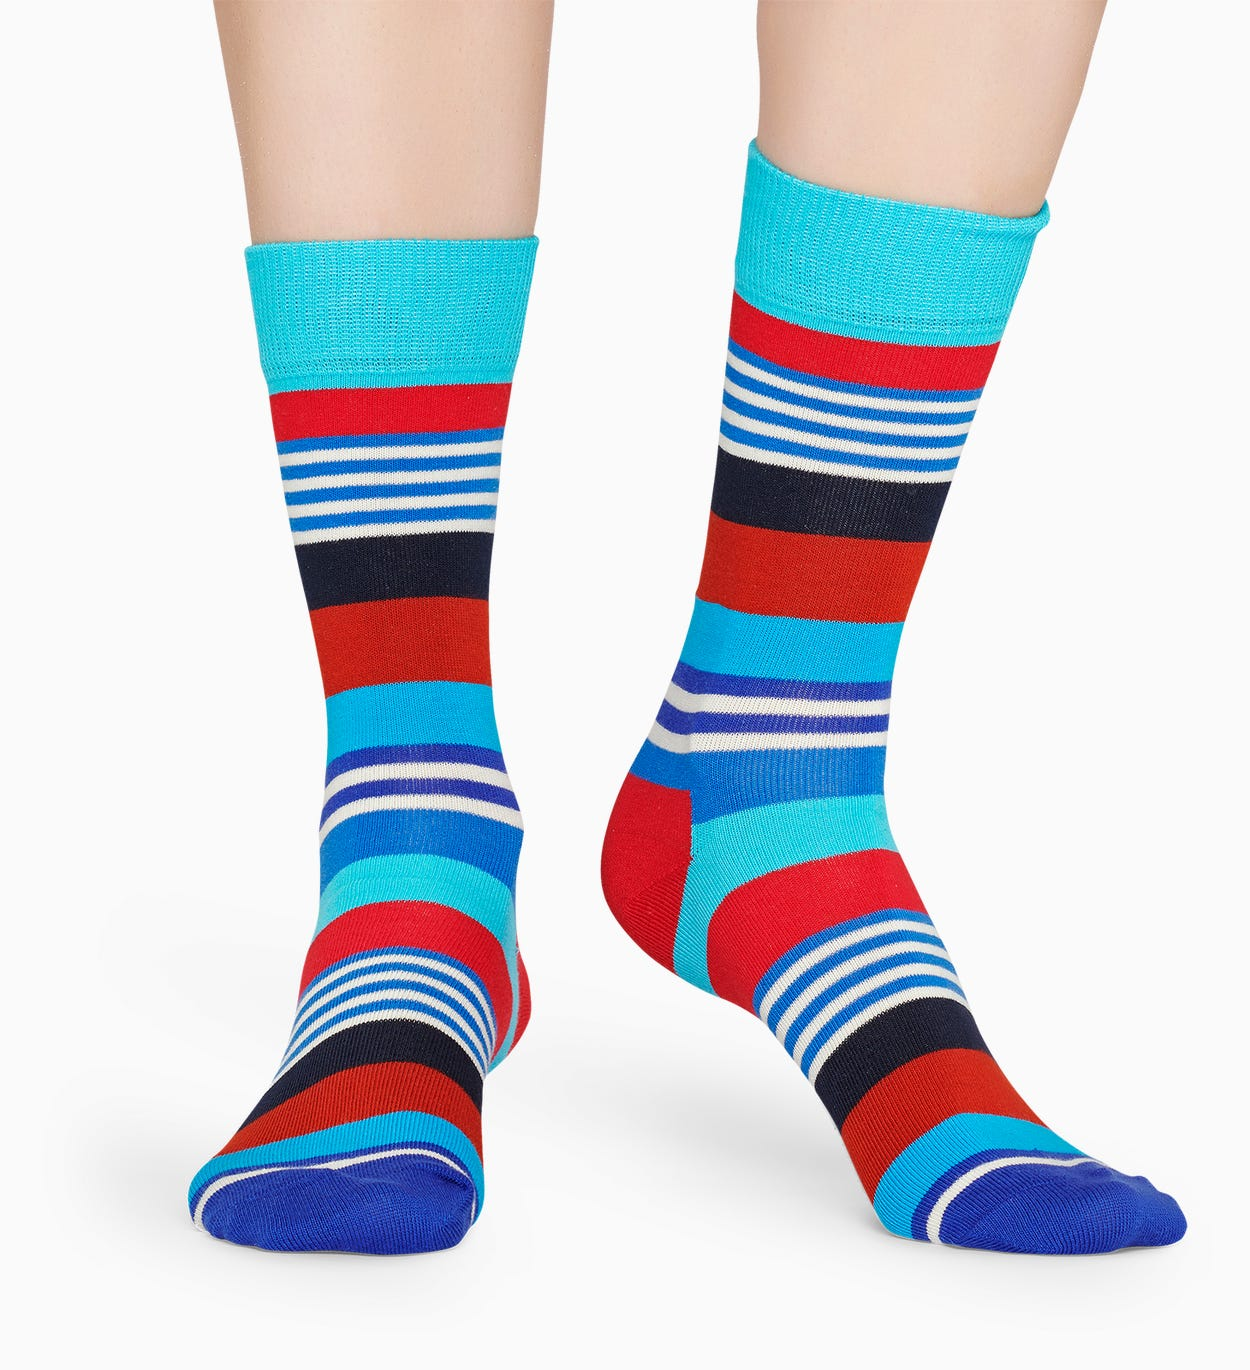 Blaue Baumwollsocken: Multi Stripe Muster | Happy Socks